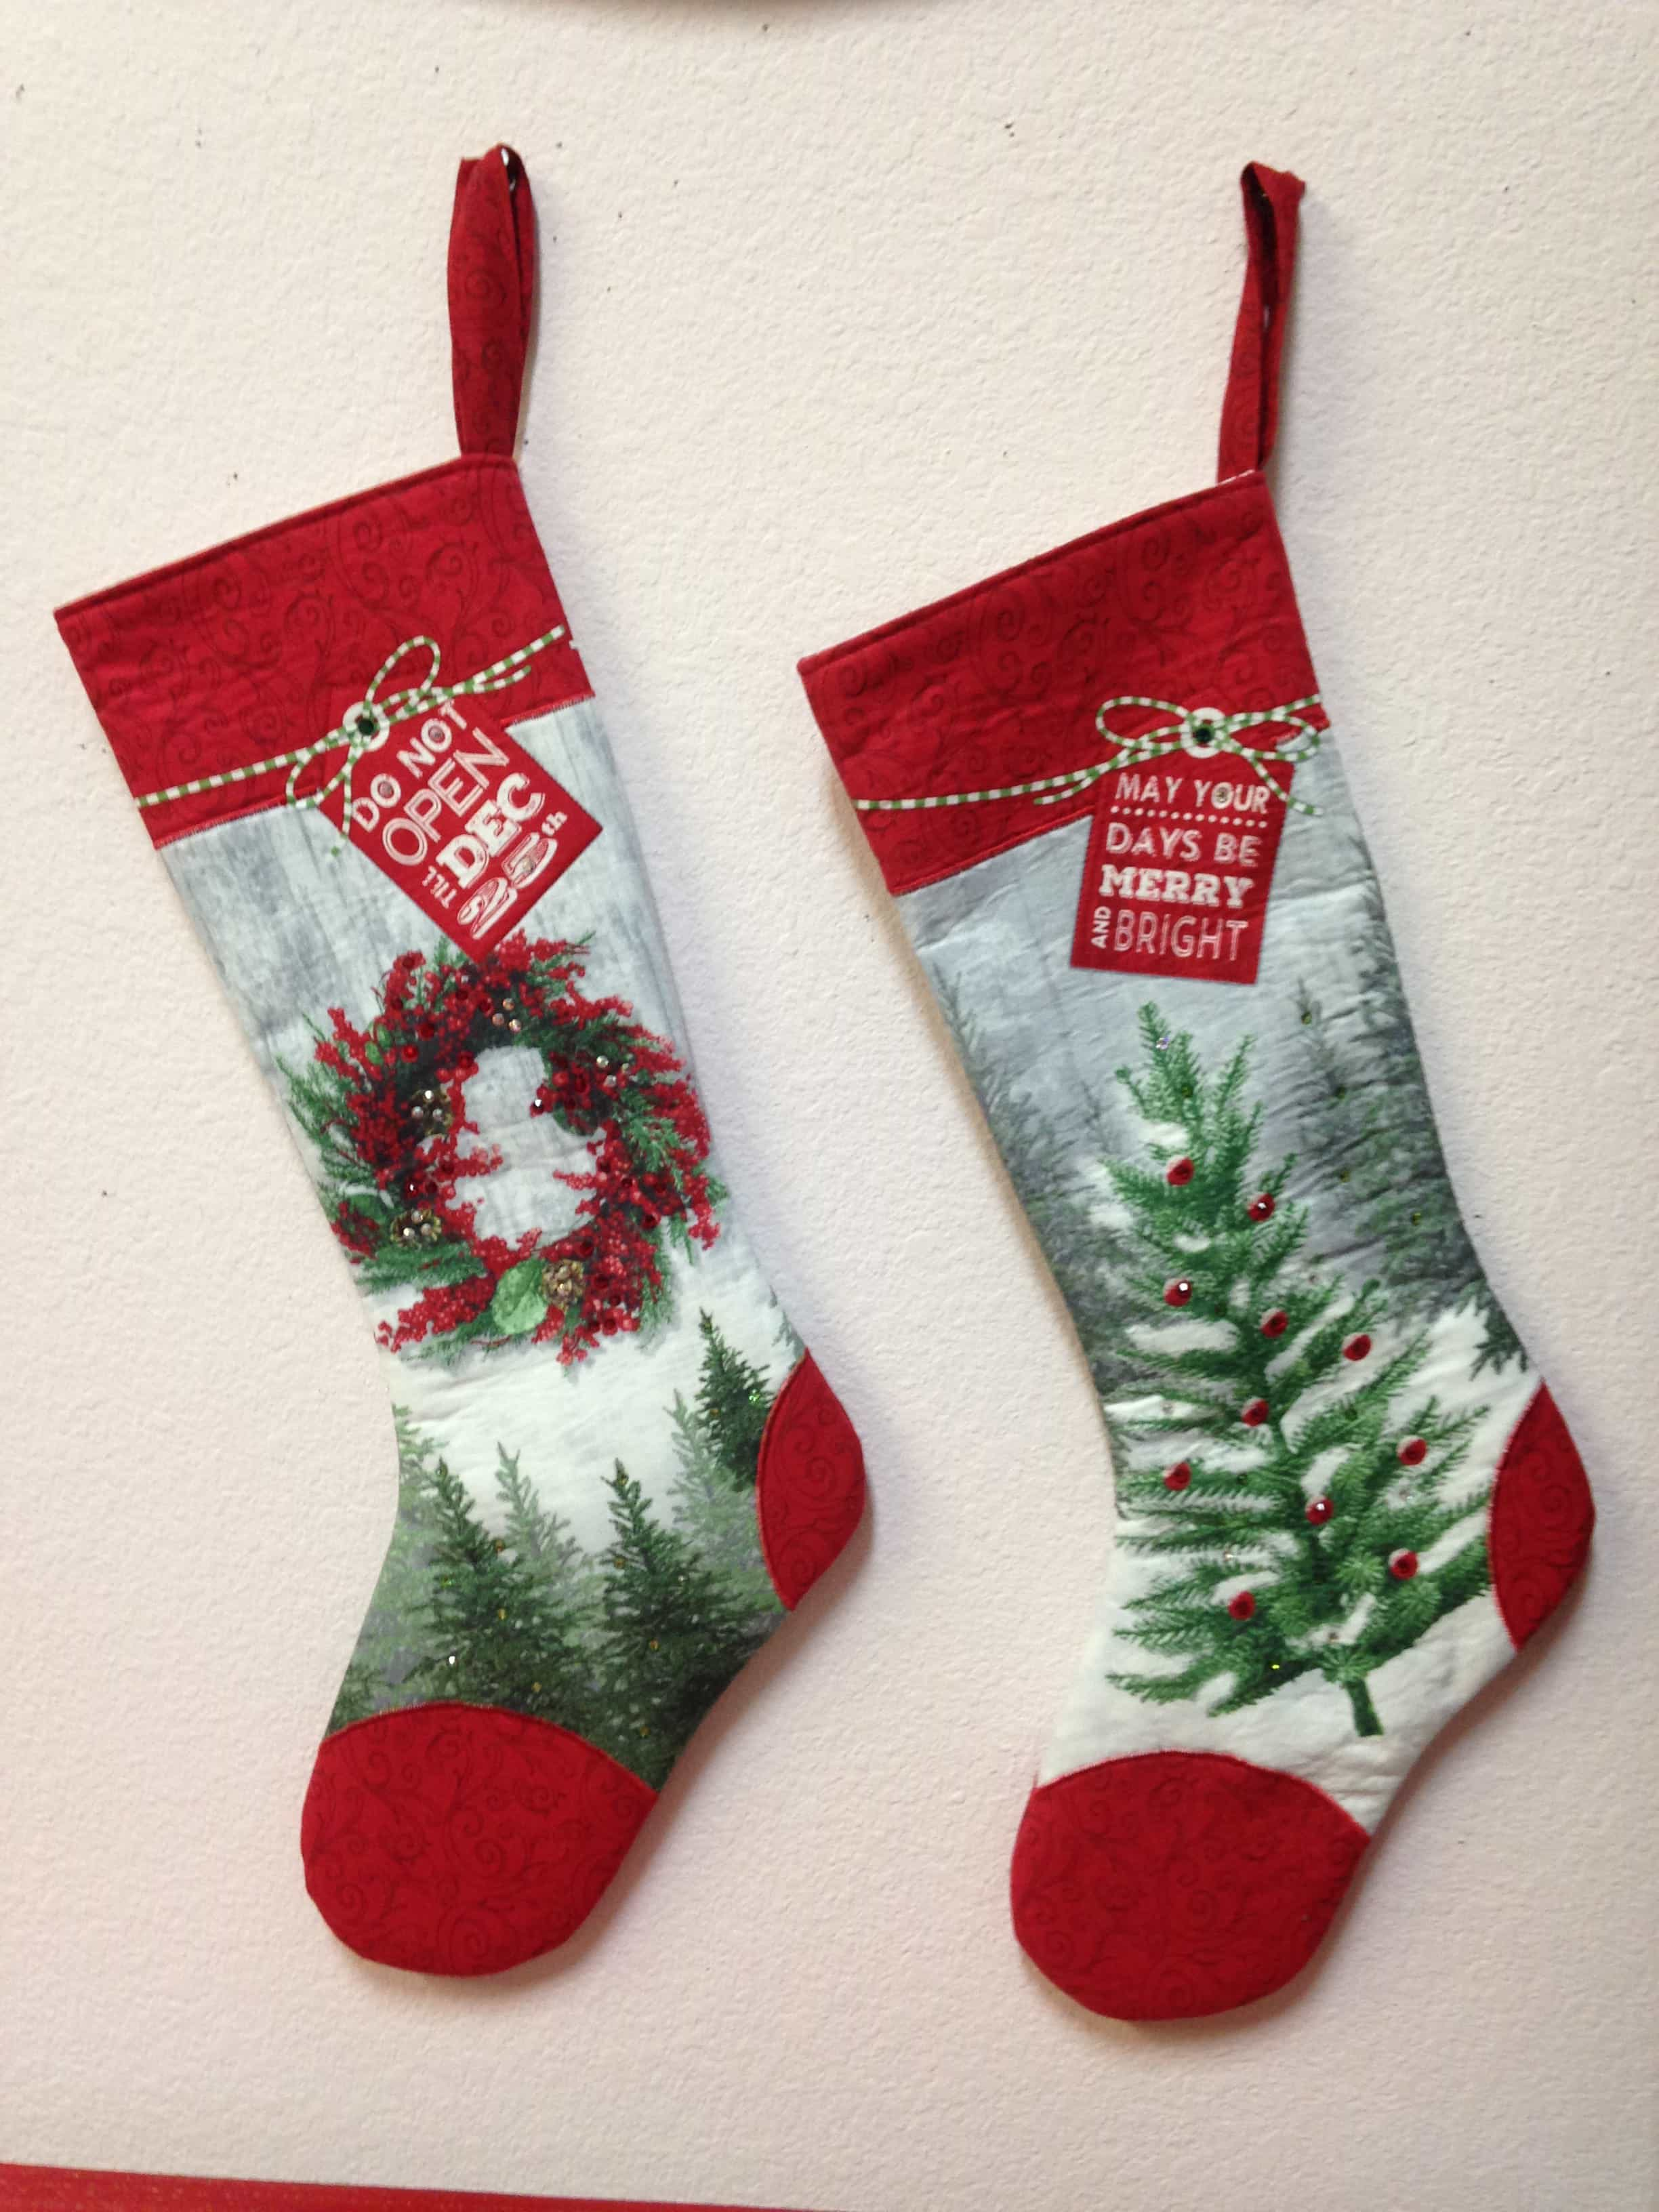 Holiday Traditions Stockings Panel